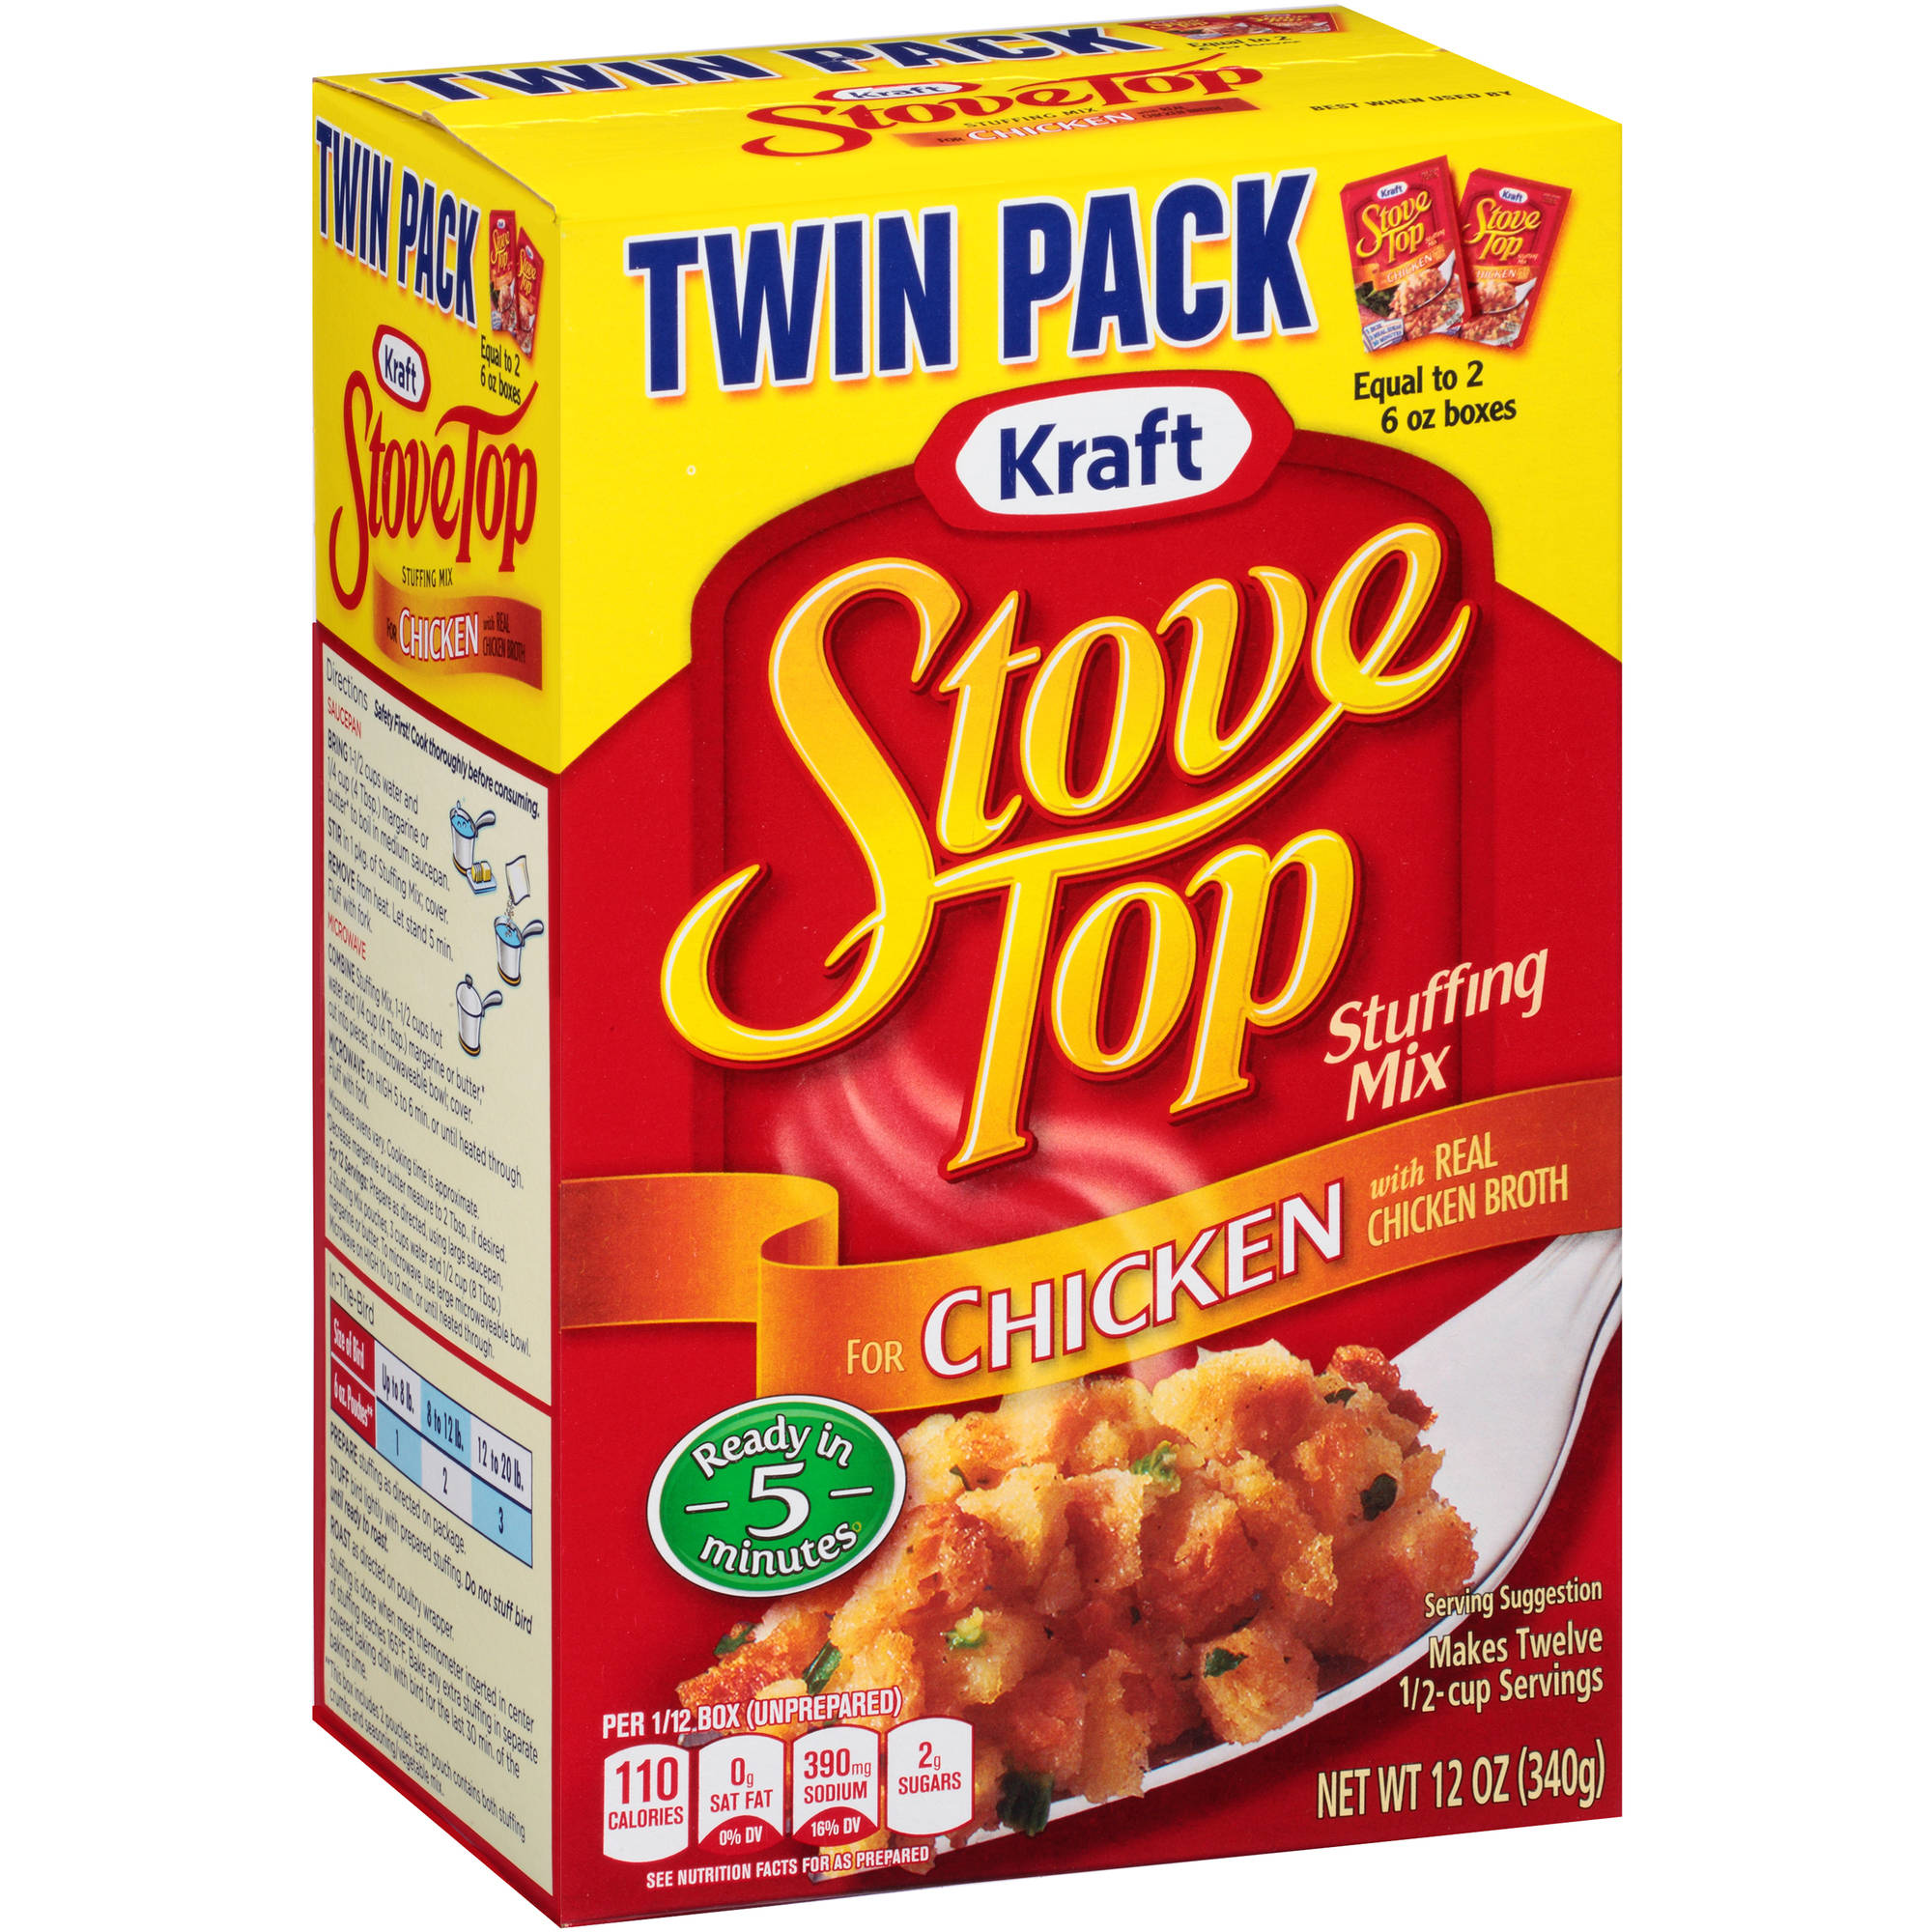 Kraft Stove Top Chicken Stuffing Mix, 12 oz